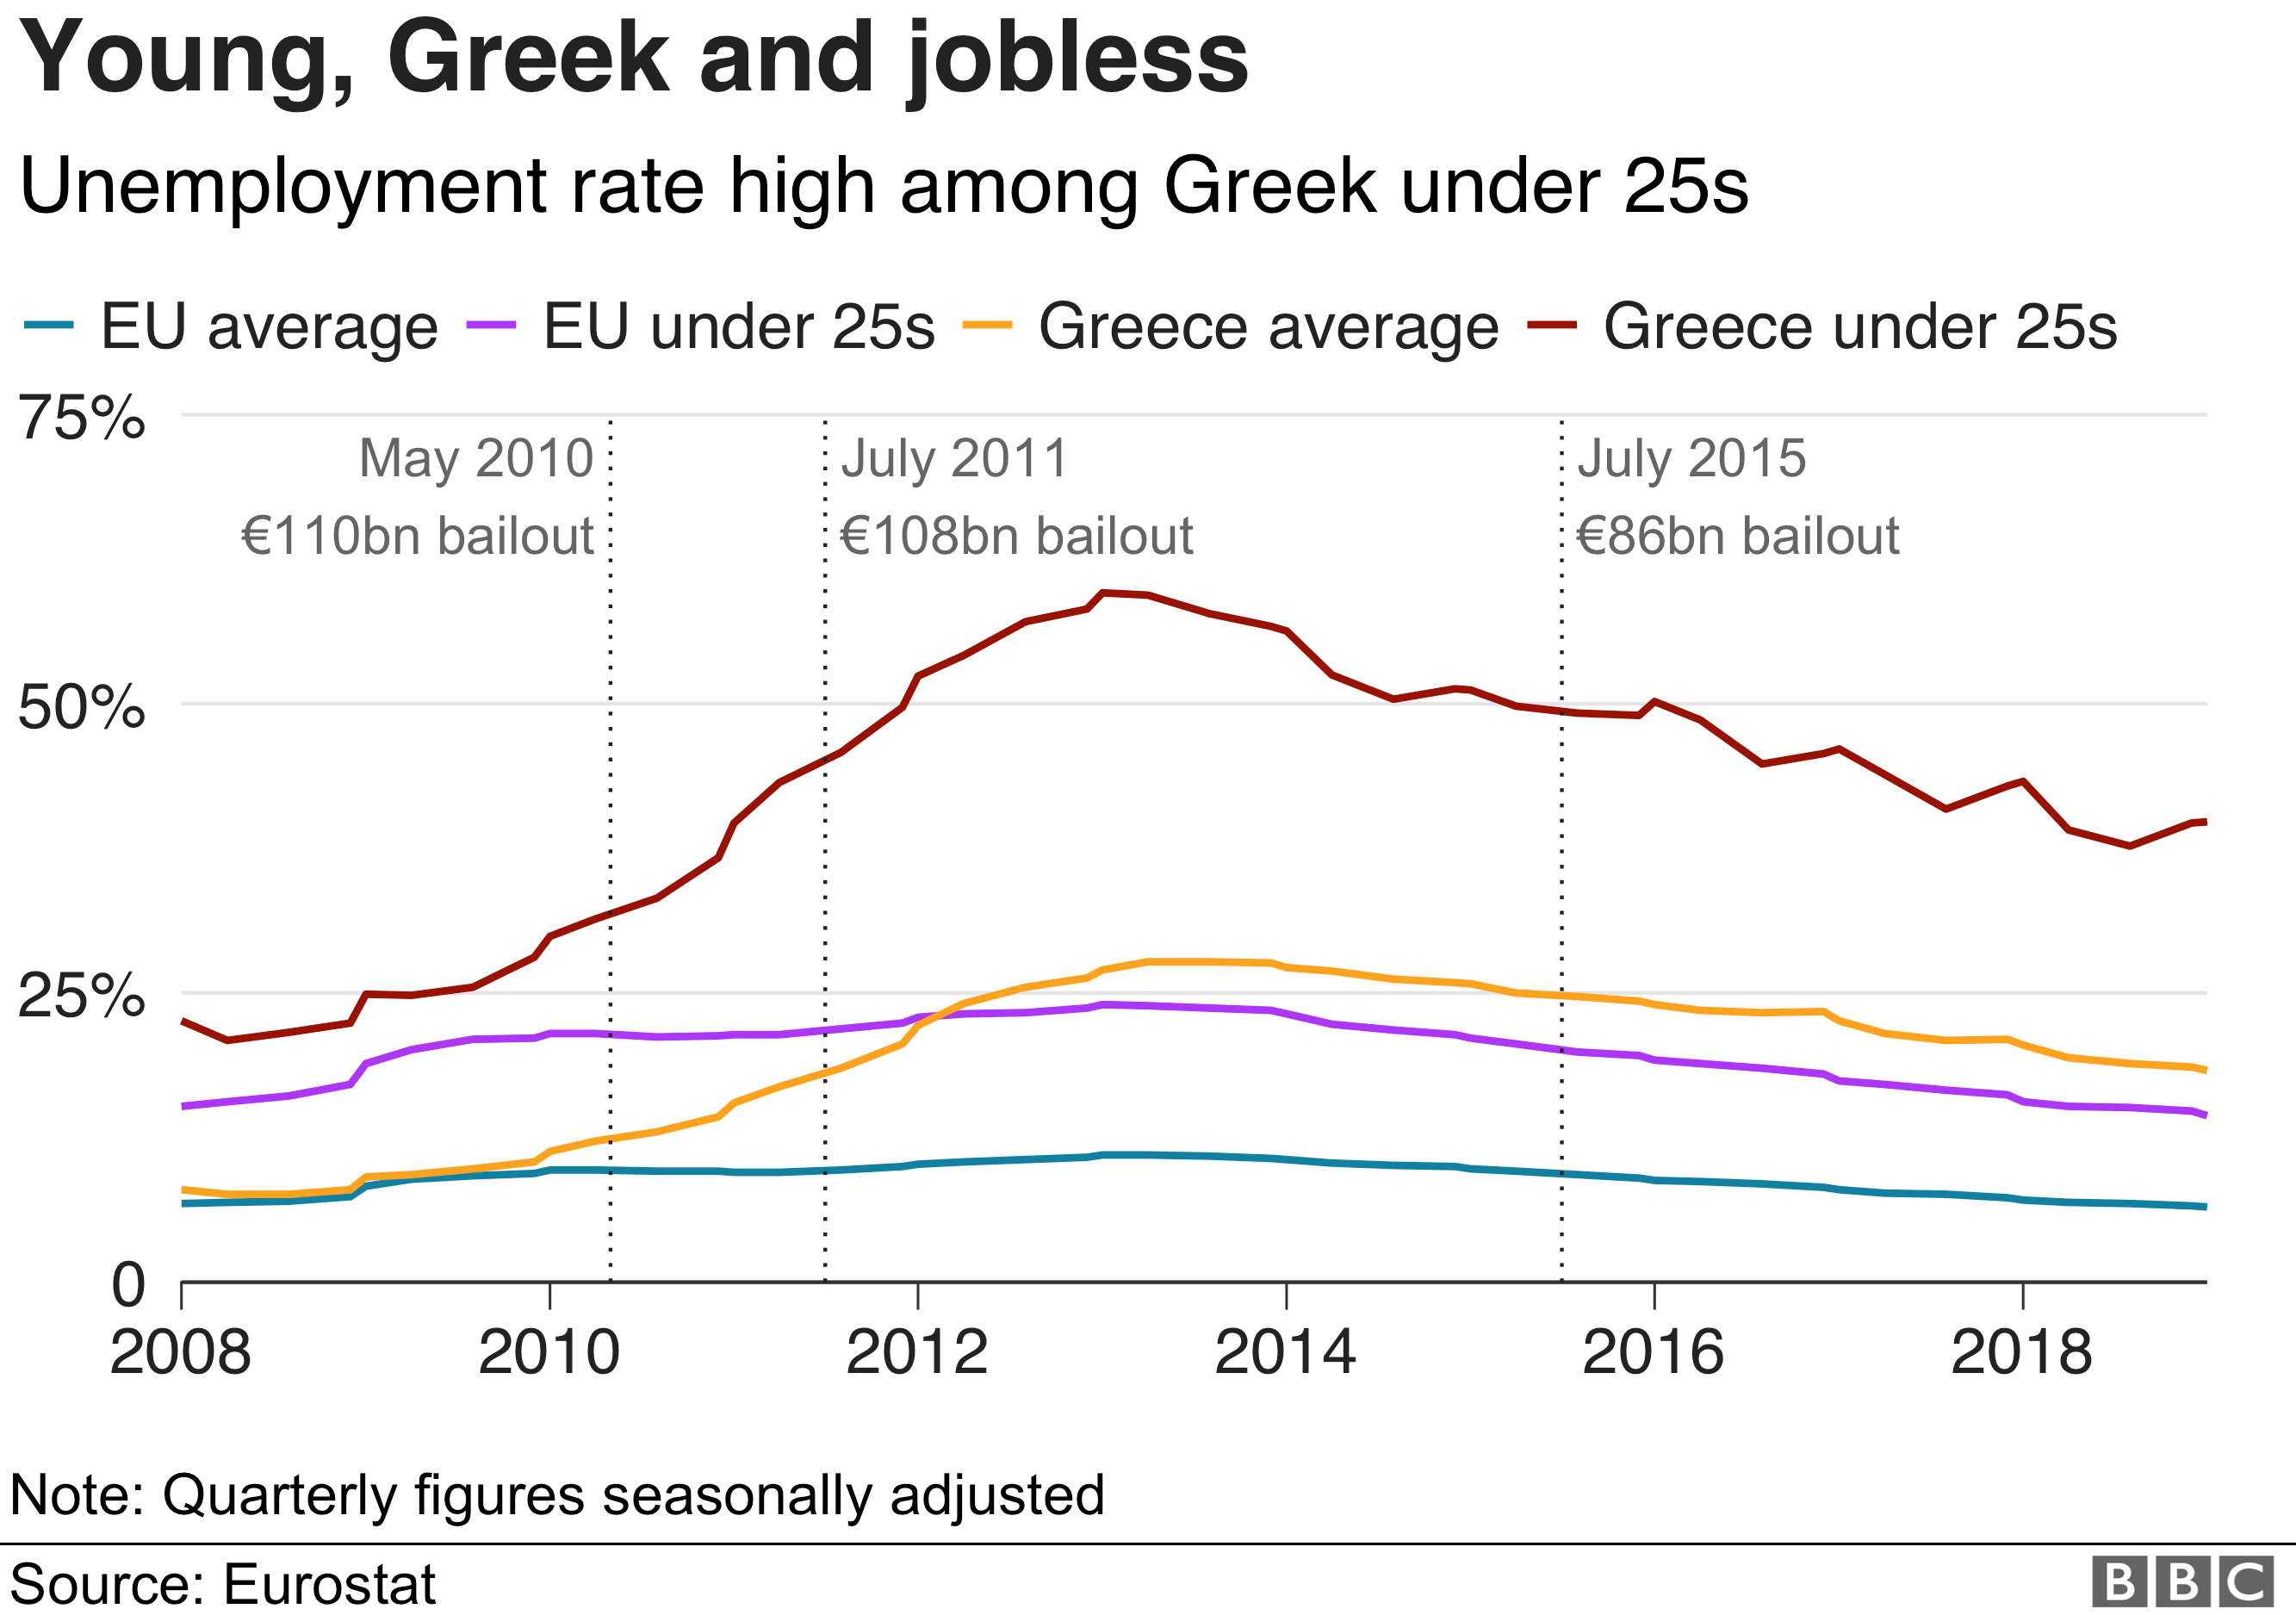 A chart shows youth unemployment rates in Greece with the dates of three major bailout packages marked for comparison